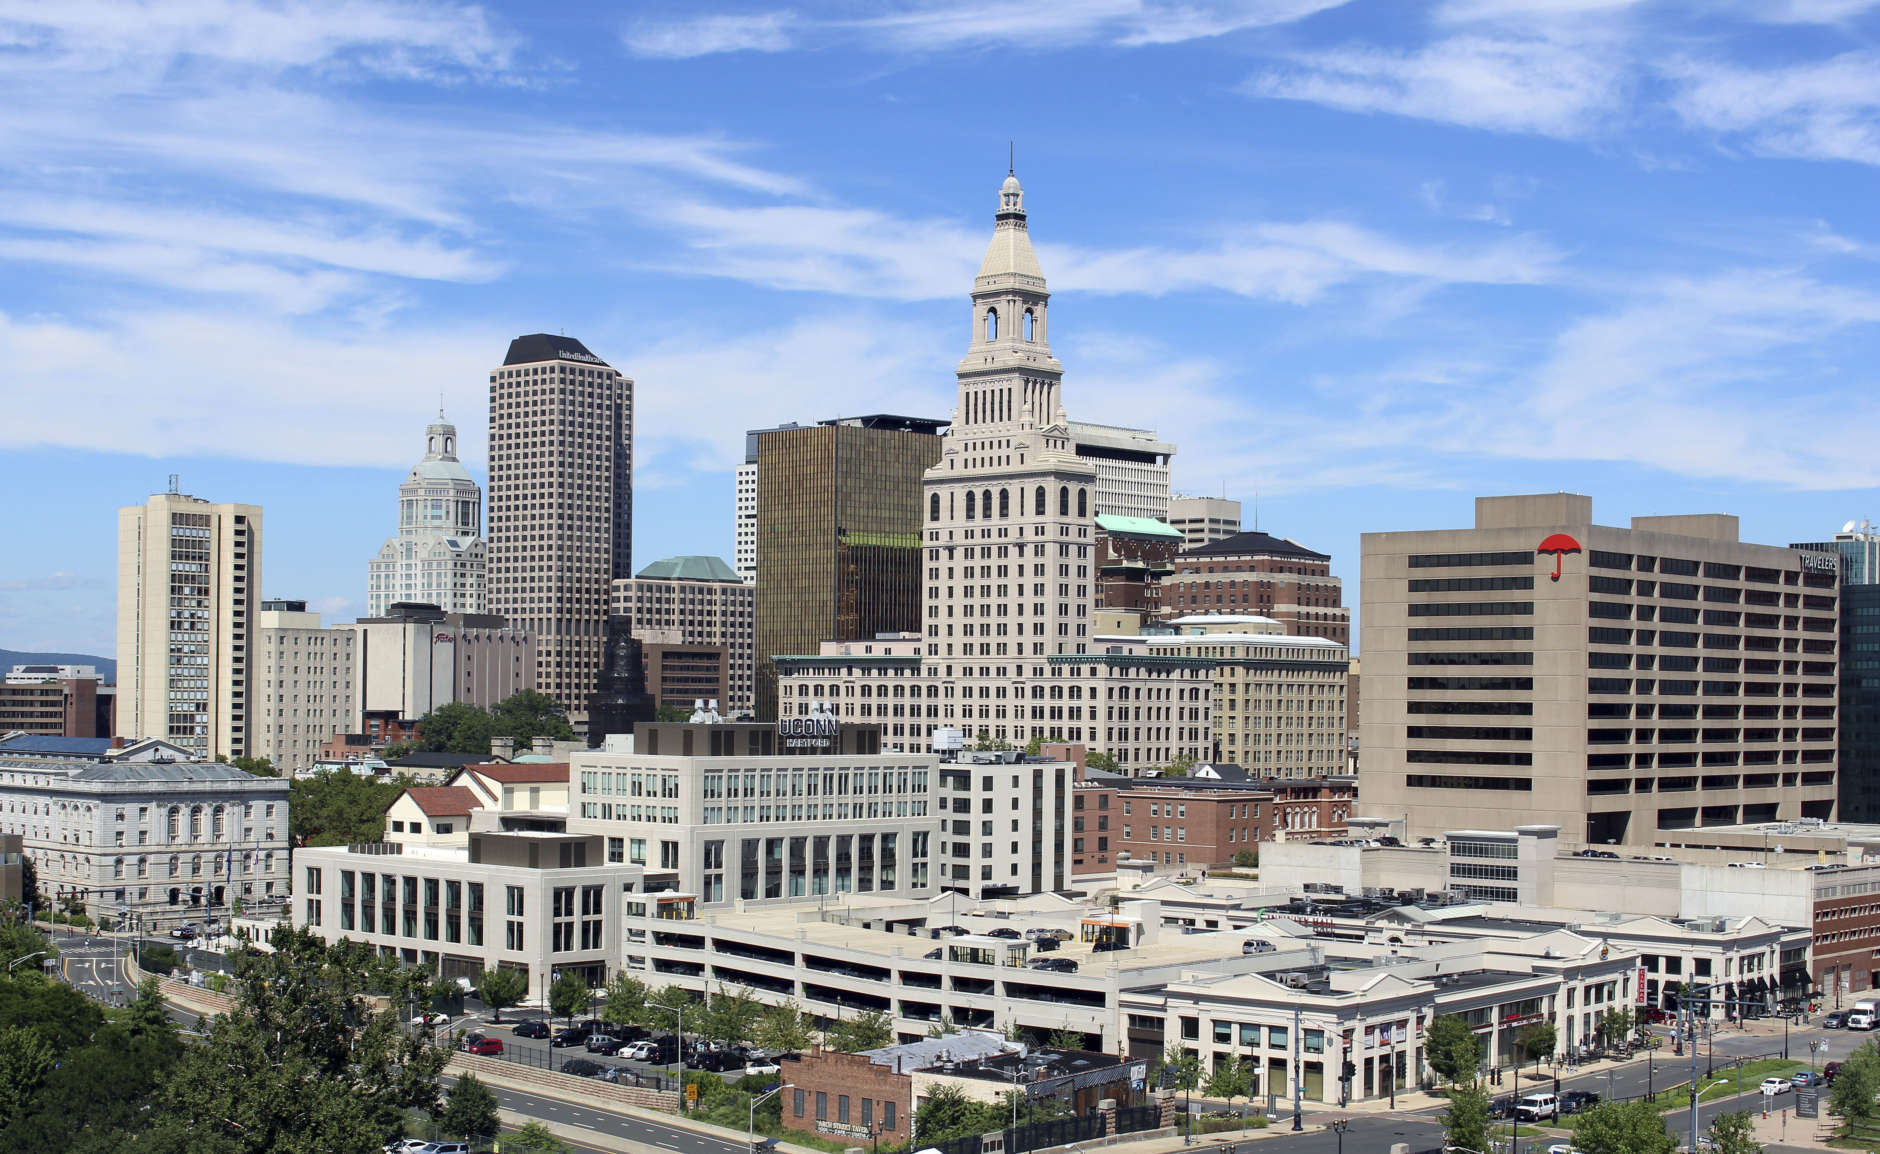 The Travelers Companies tower, center, anchors the skyline of downtown Hartford, Conn., Wednesday, Aug. 23, 2017. (AP Photo/Pat Eaton-Robb)